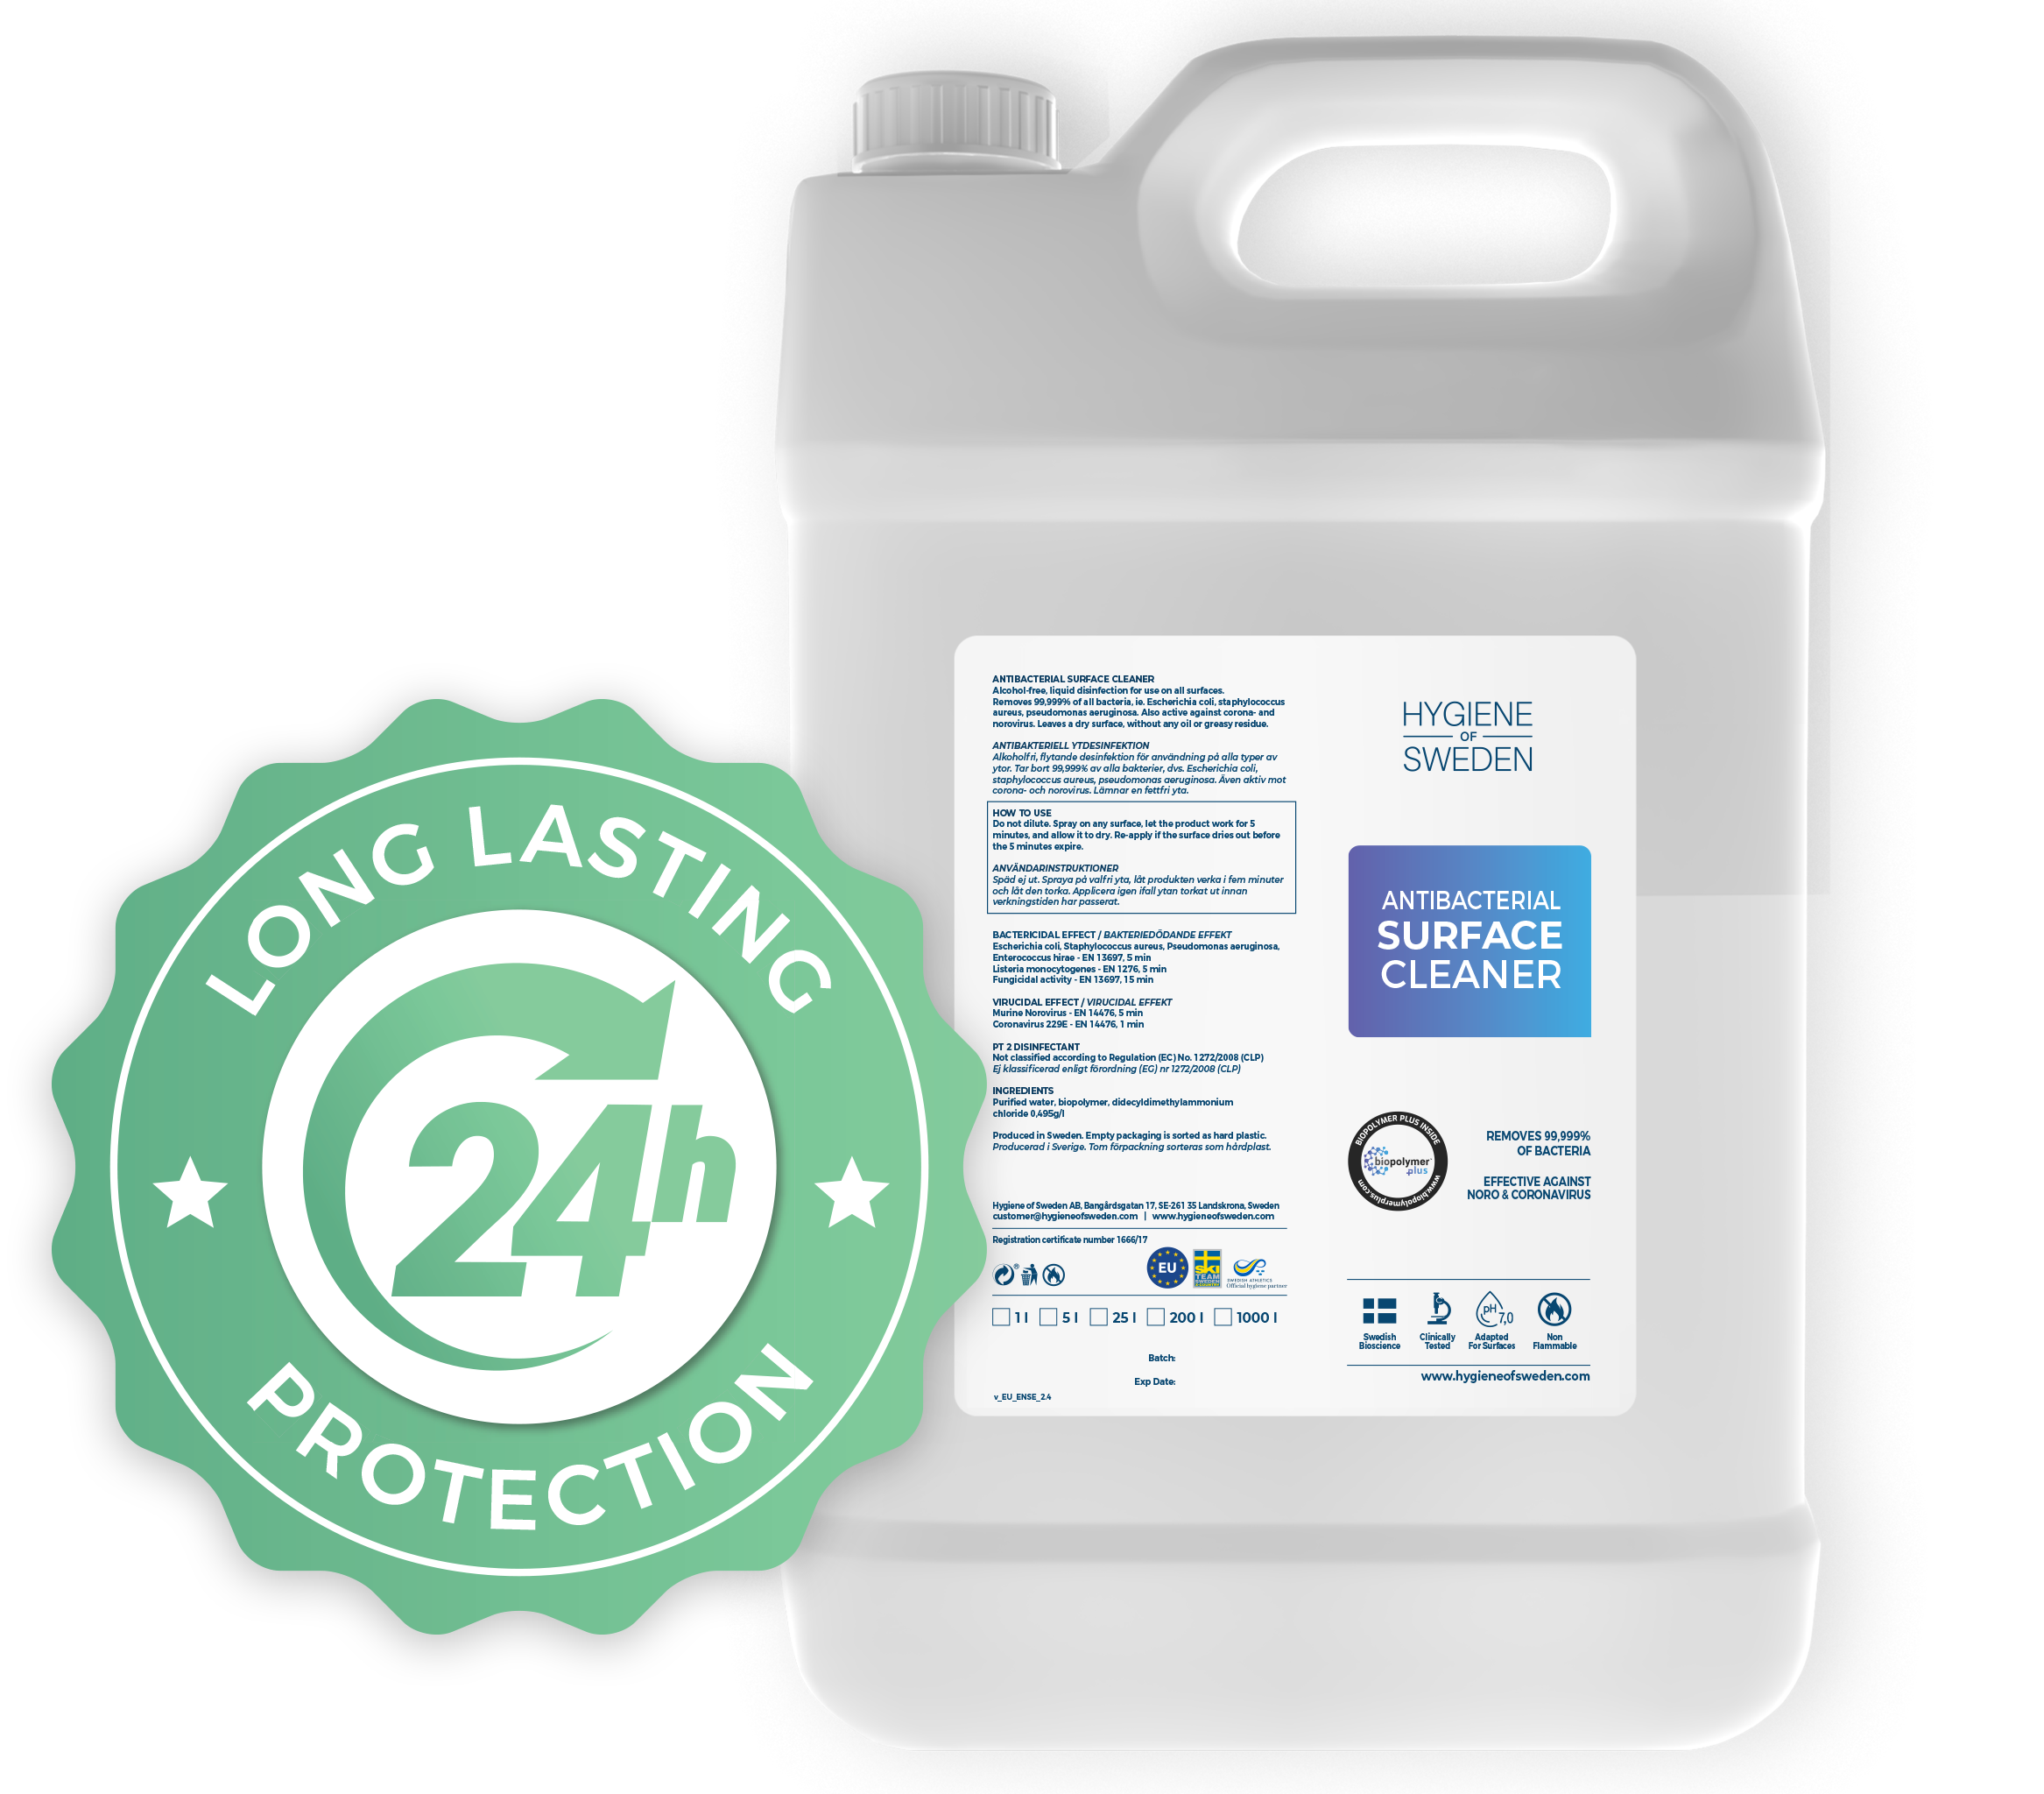 Surface Cleaner 24 hour protection